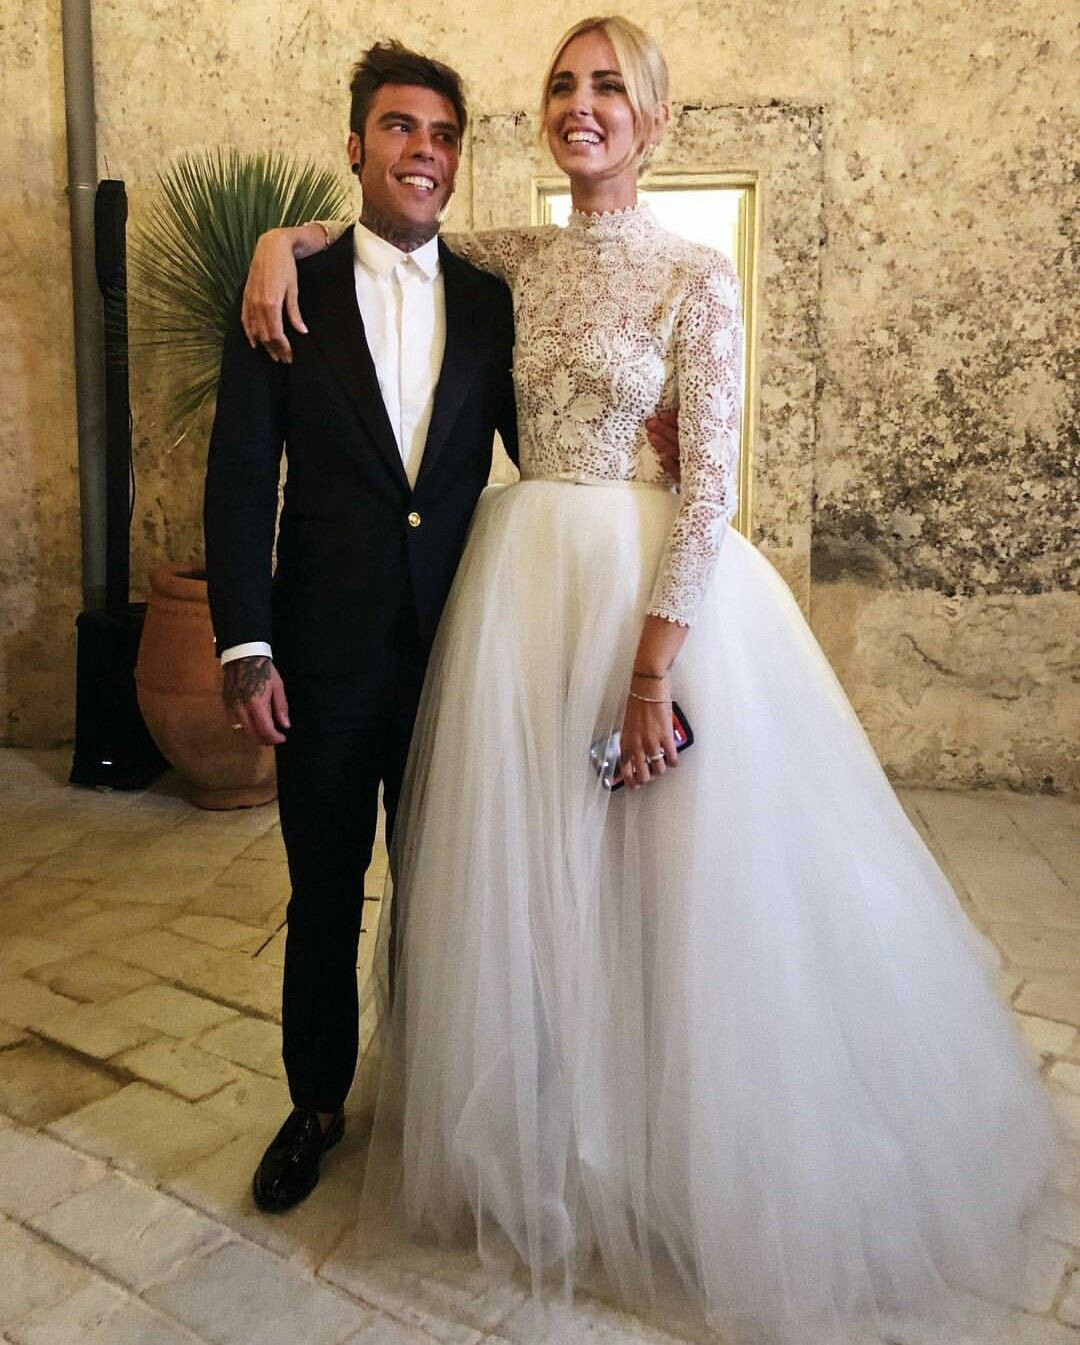 Chiara Ferragni And Fedez Wedding In Noto Sicily Wearing A